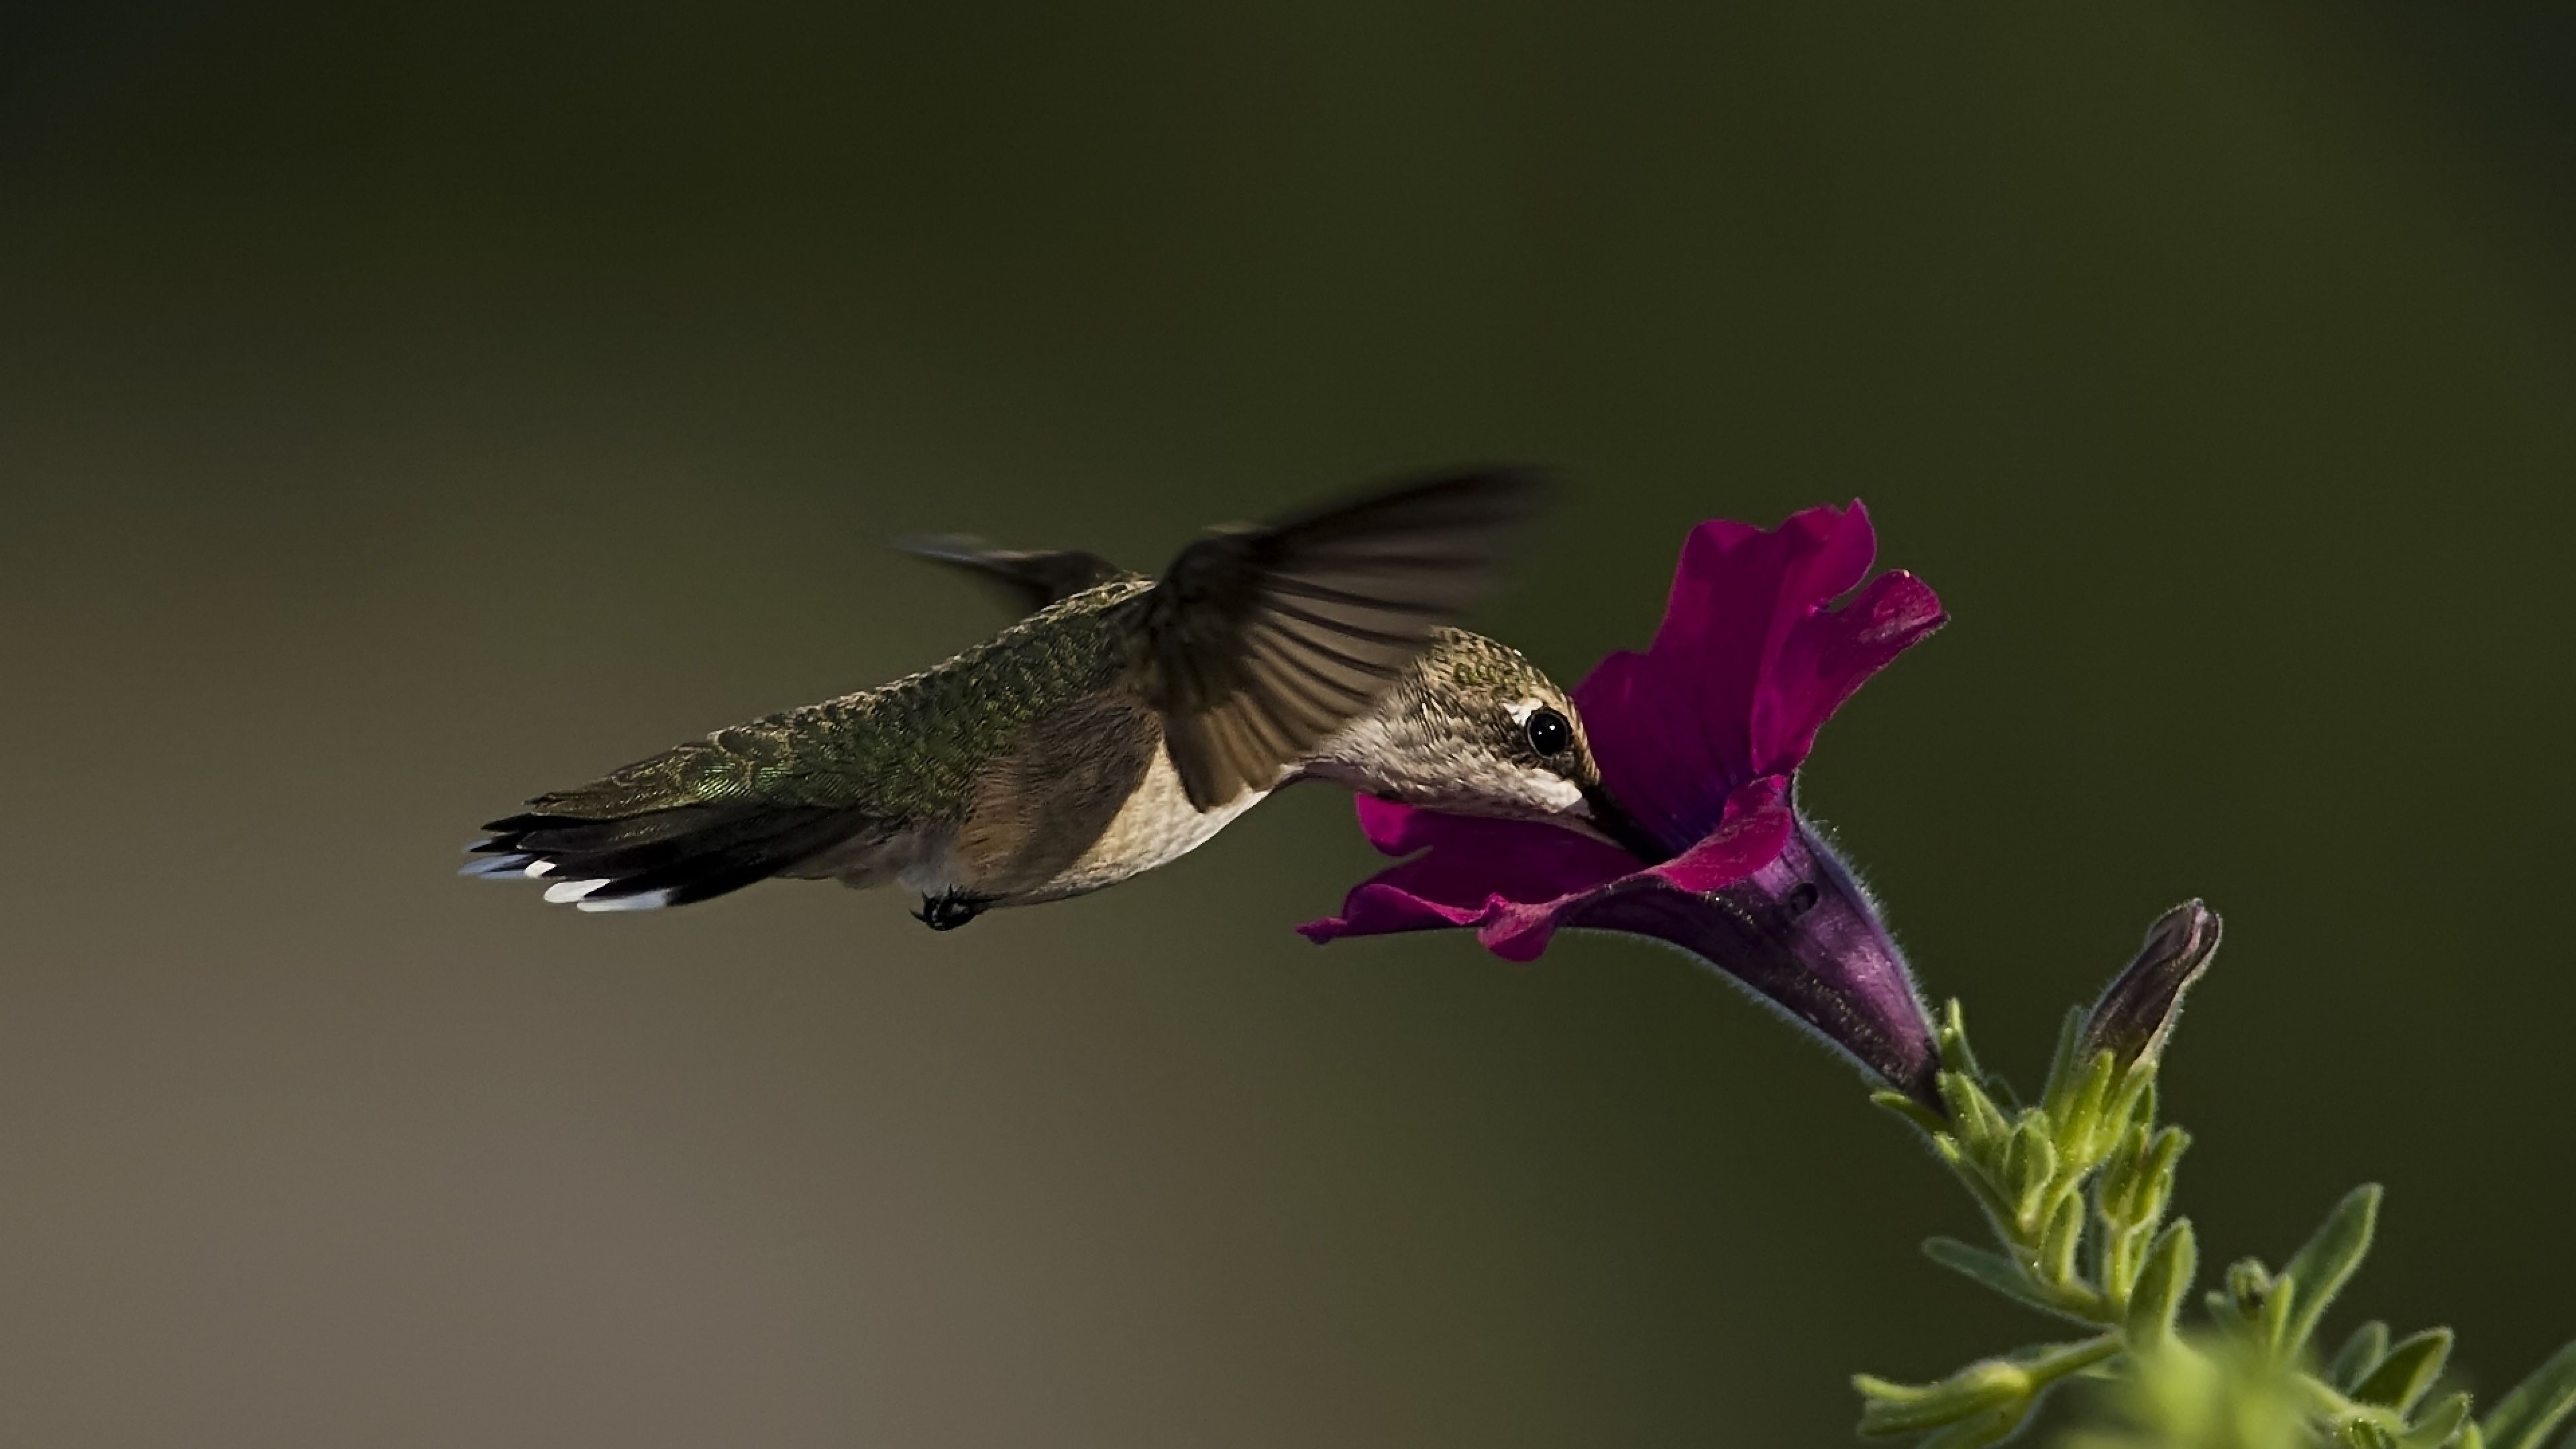 ultra hd wallpaper, flower 4k |  bird, hummingbird, flower